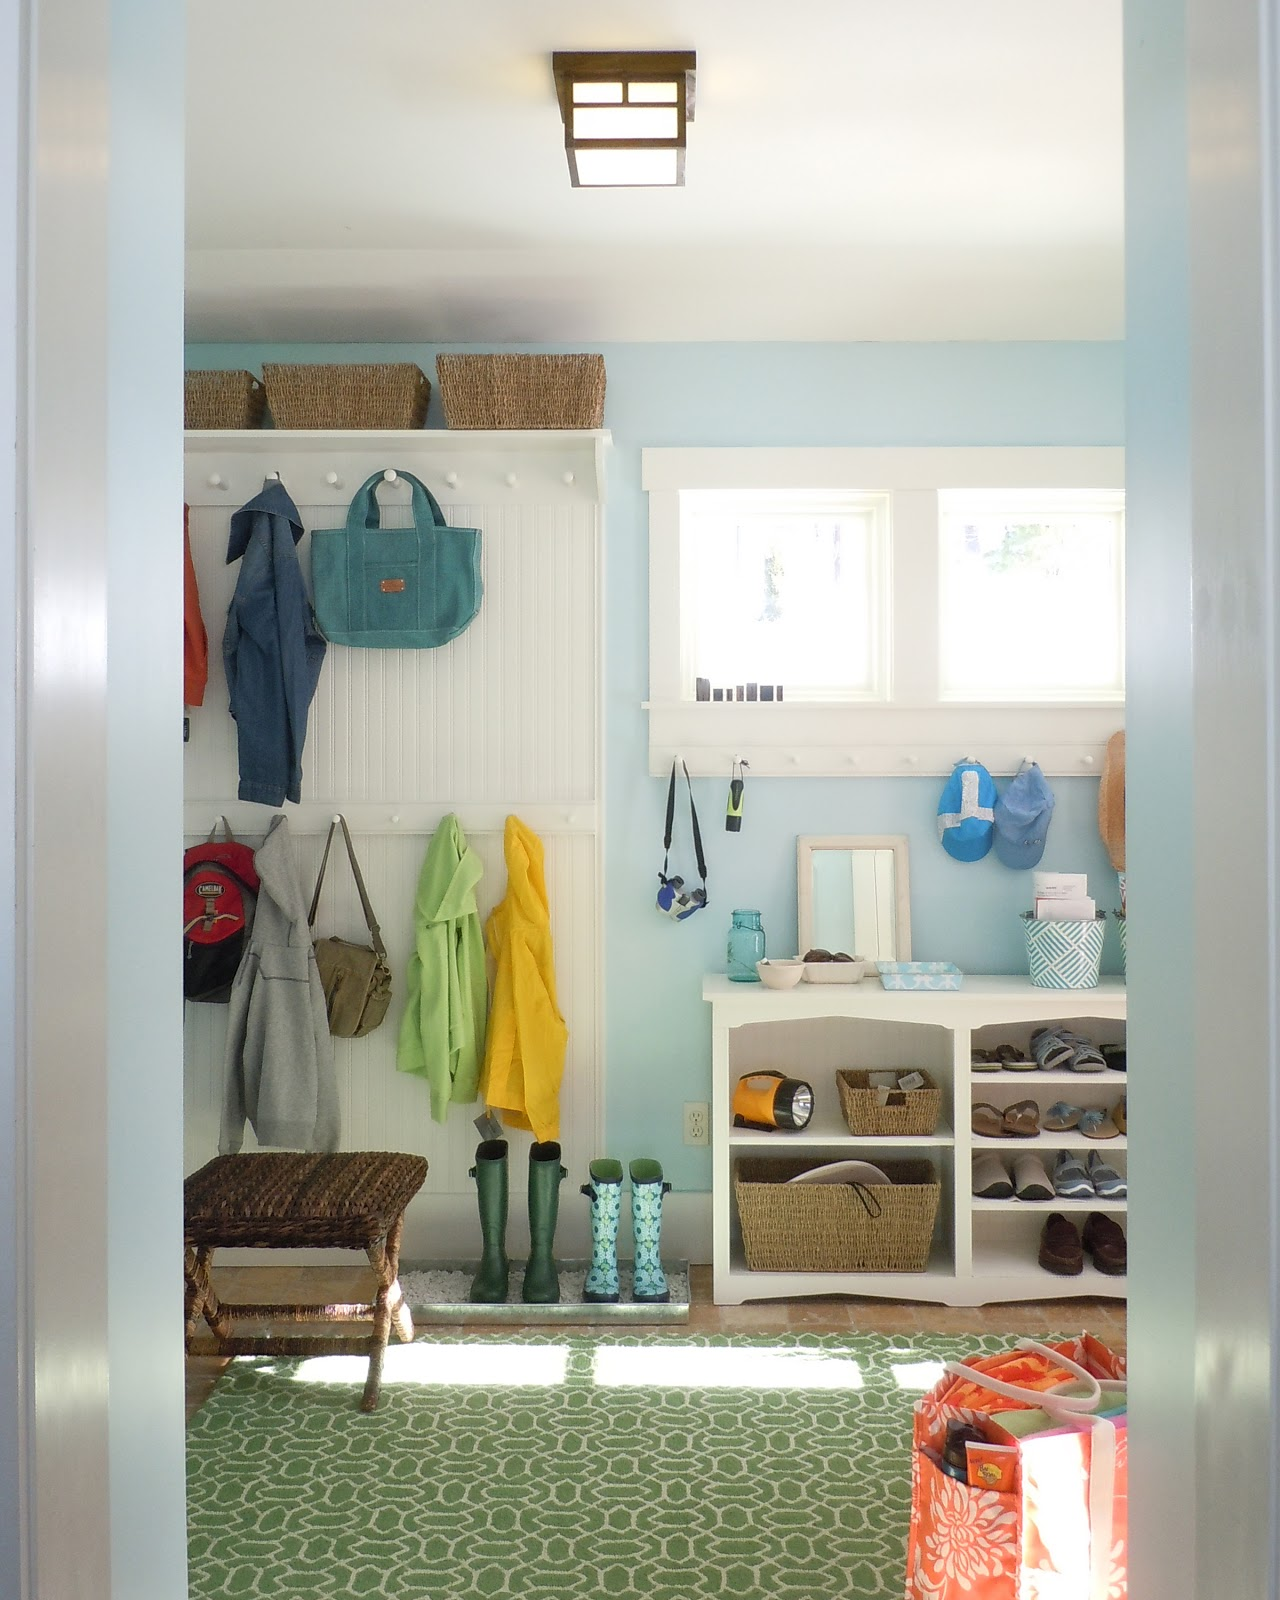 How to Organize For a Better Home